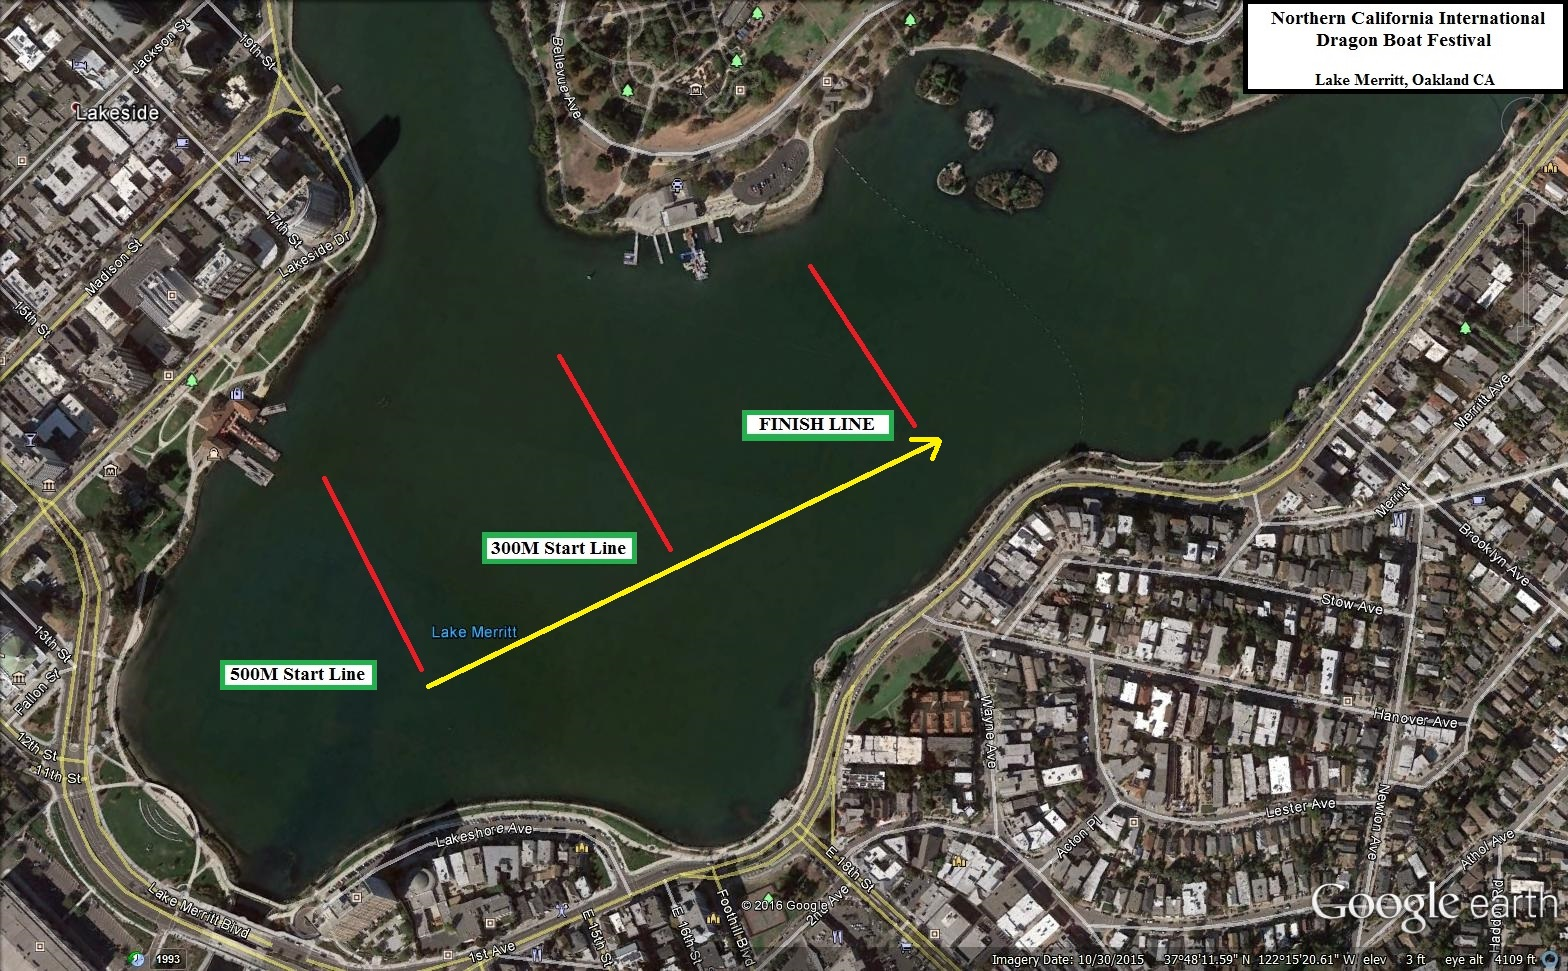 Map of Lake Merritt 500m start line, 300m start line, and finish line